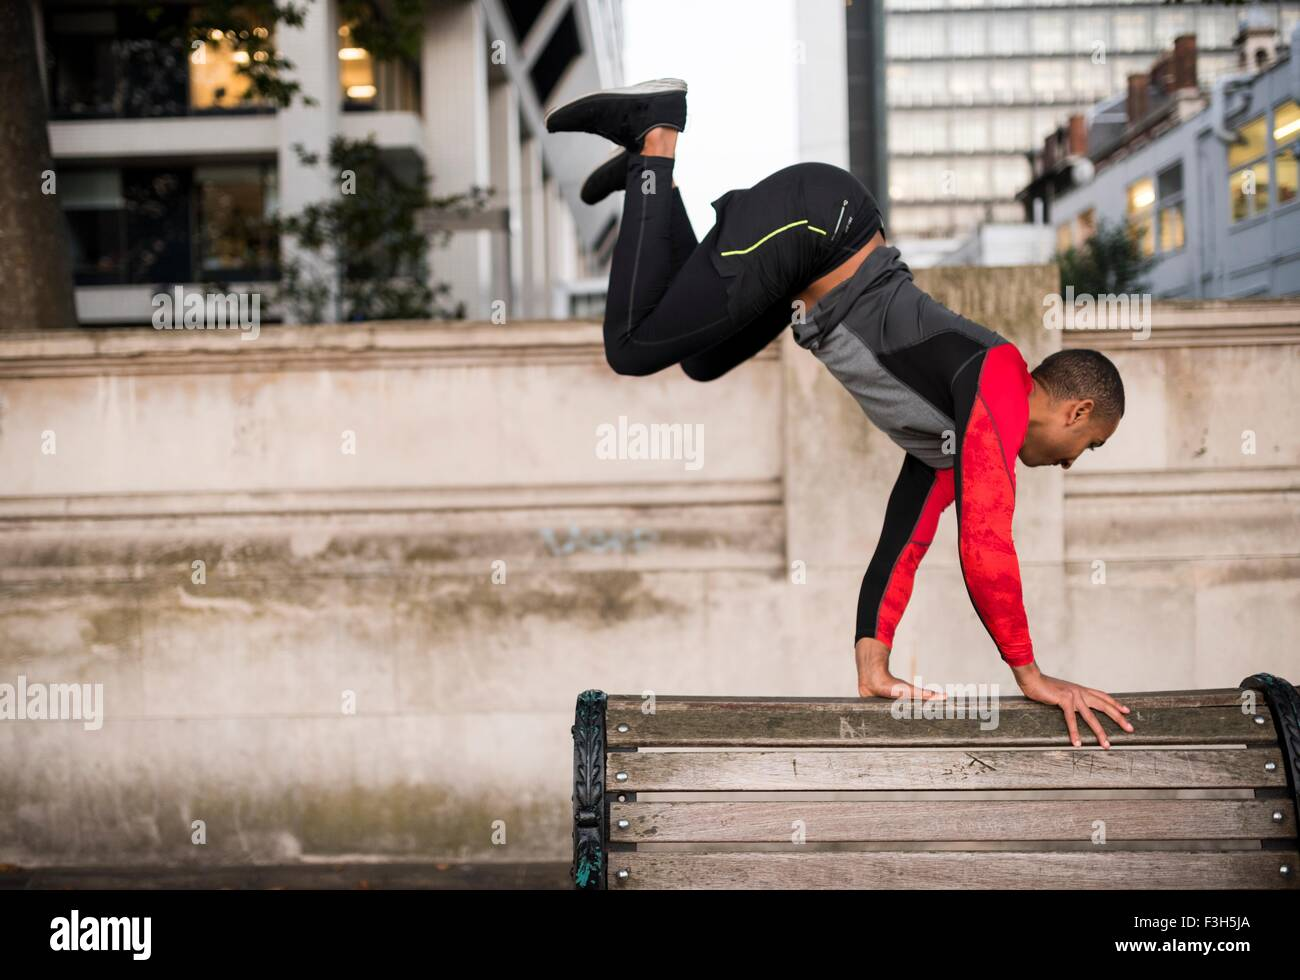 Young man jumping over park bench in city - Stock Image